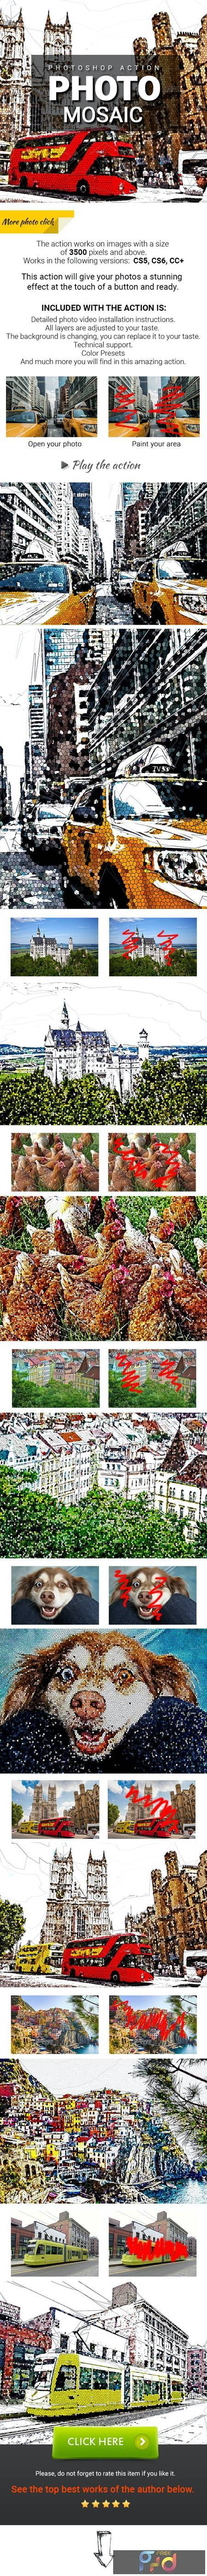 Photo Mosaic Photoshop Action 27986689 1